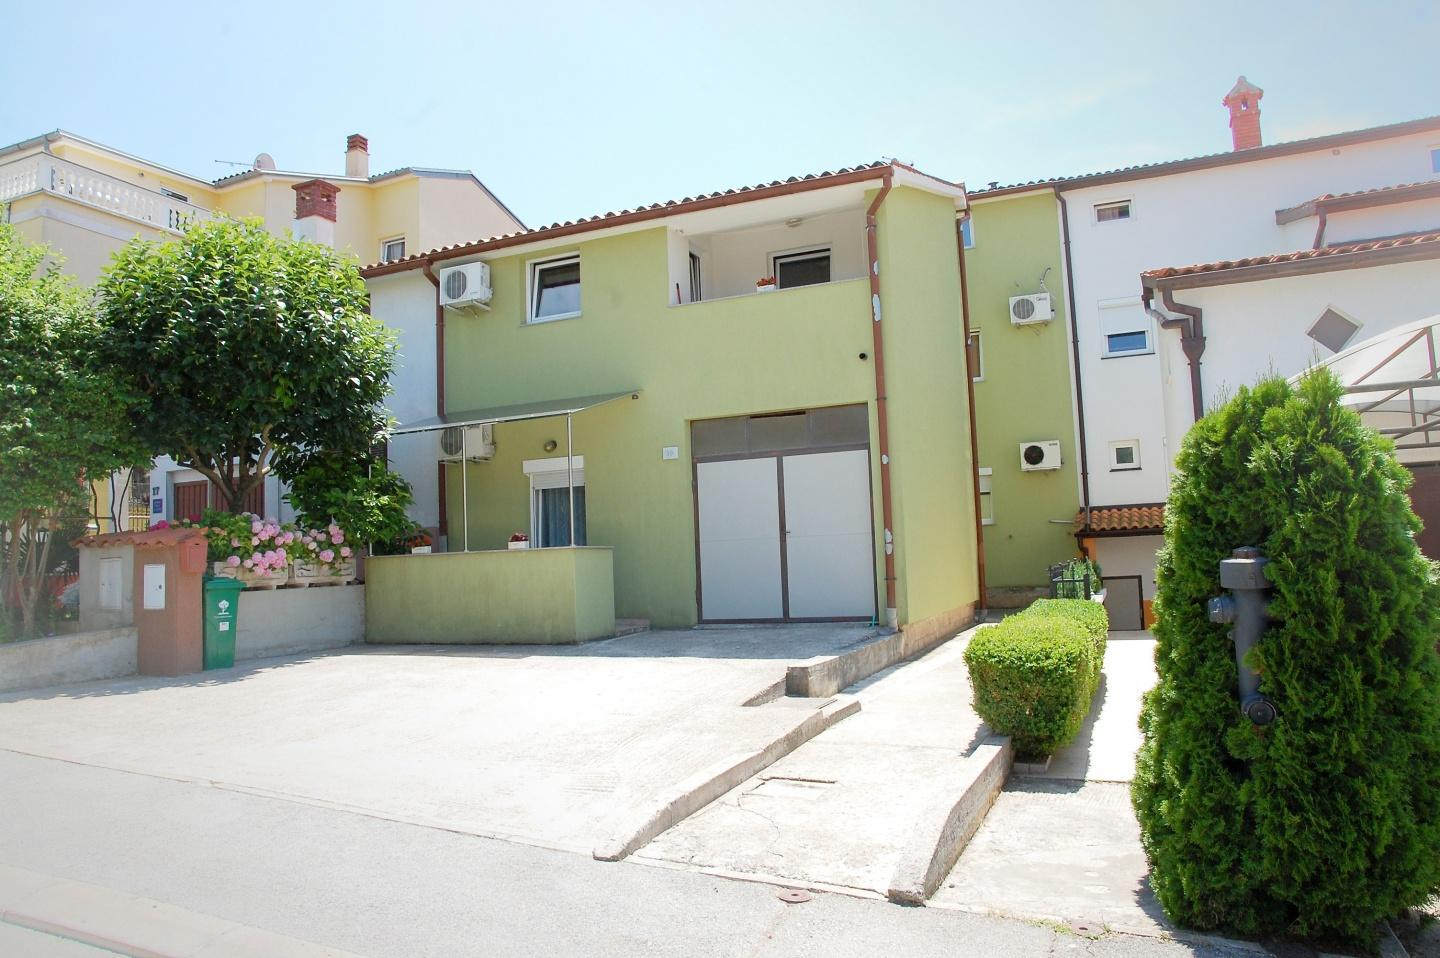 Cozy apartment close to the center of Pula with... Slide-1